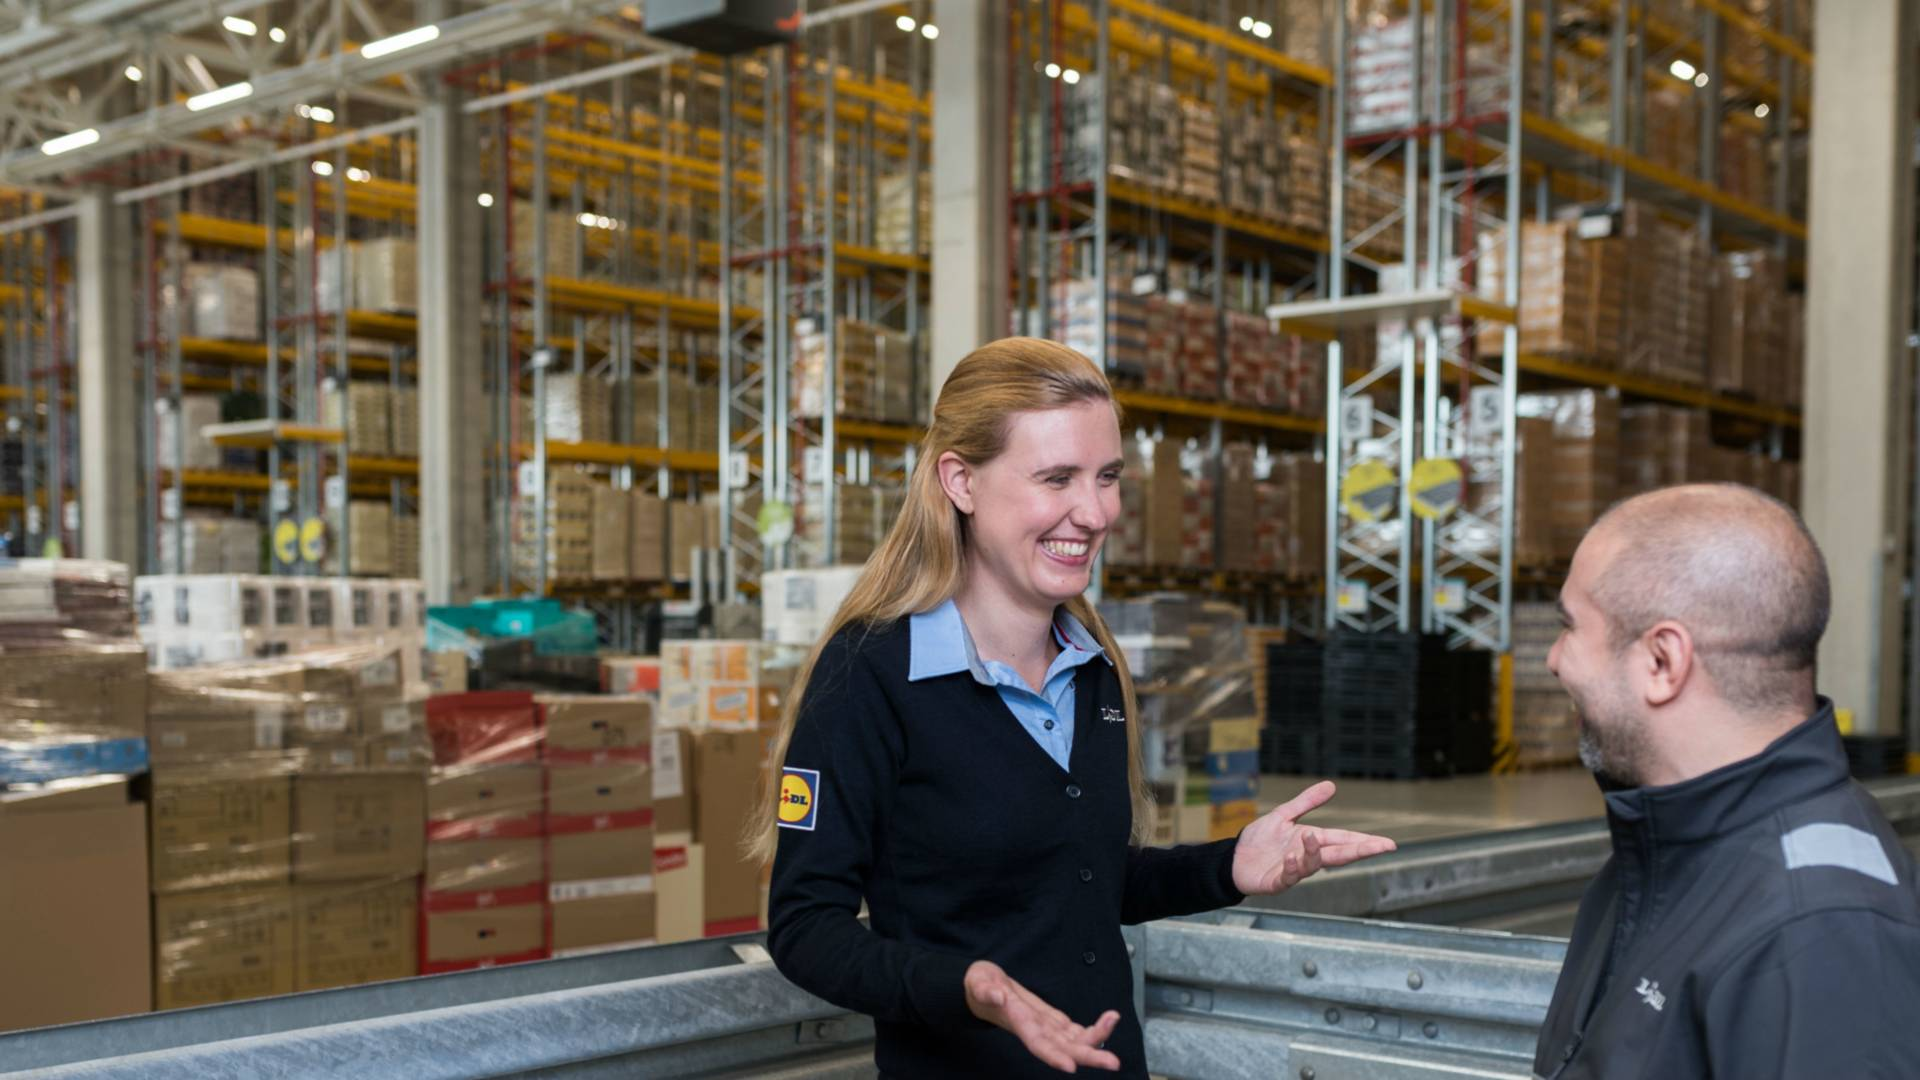 Logistiek management trainee in gesprek met teammanager